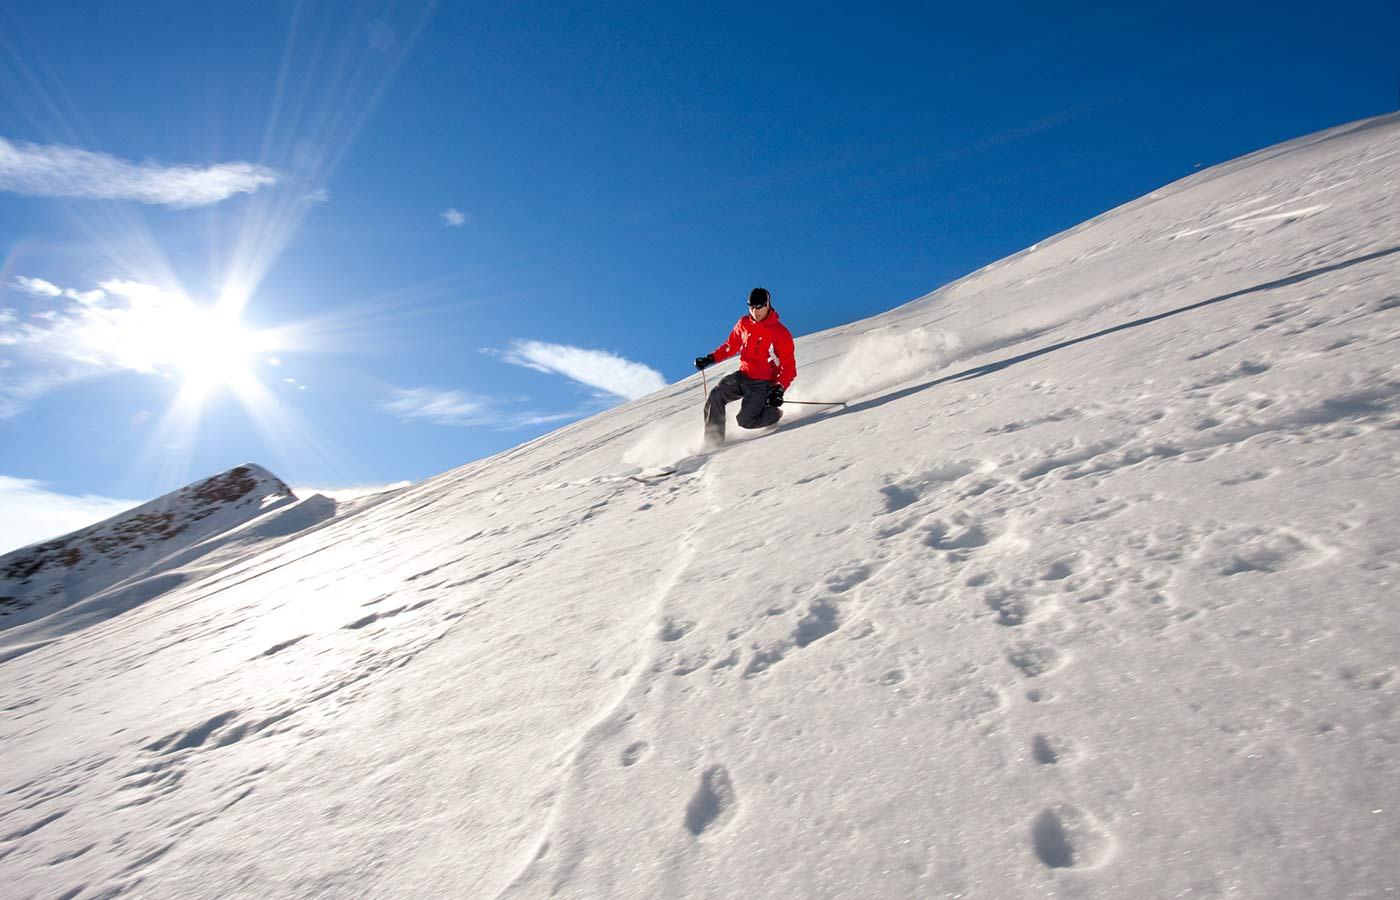 A skier practices telemark on a snow-covered slope on the mountain of South Tyrol in Italy